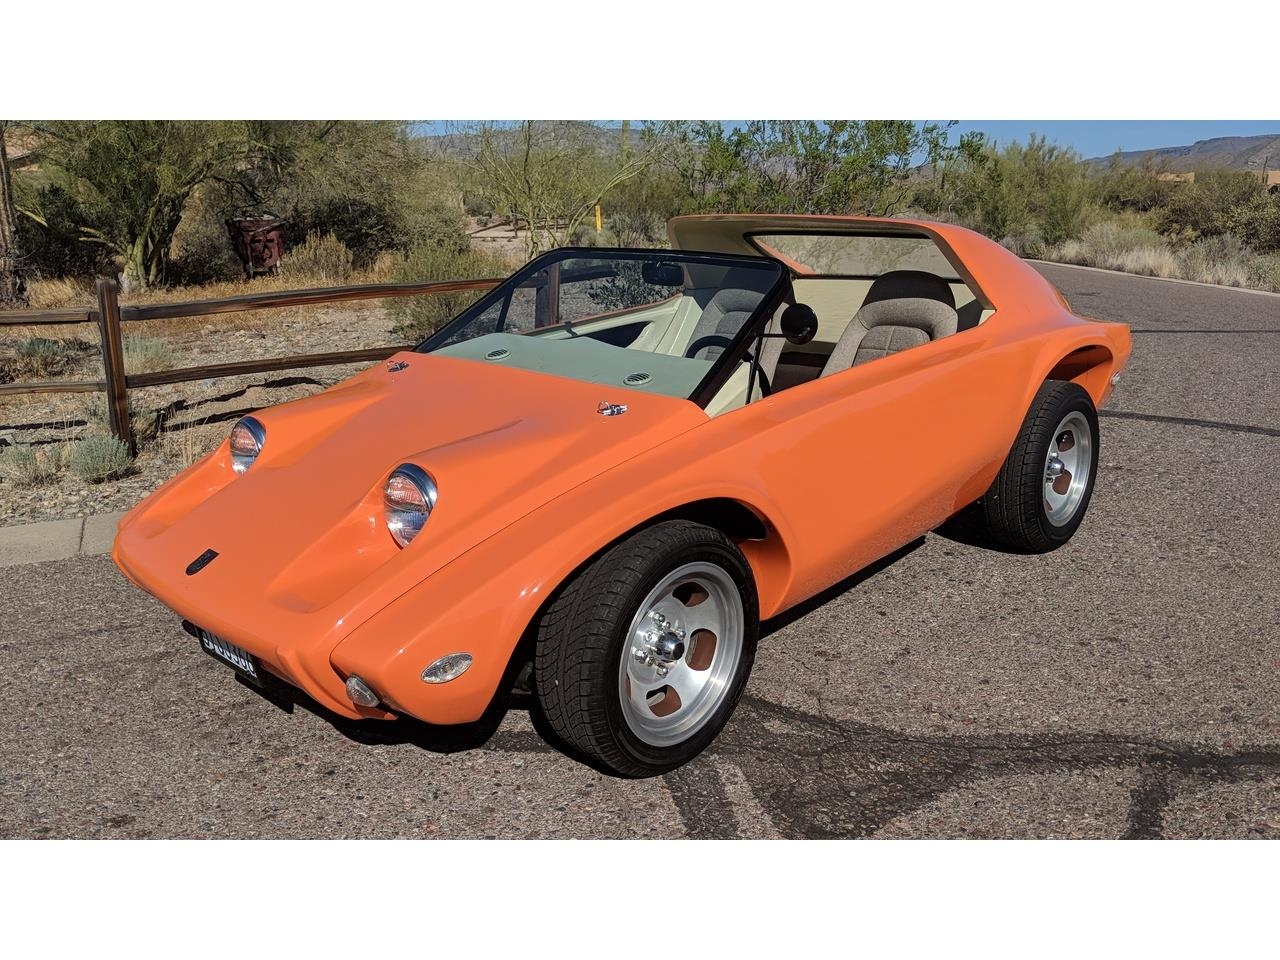 Large Picture of Classic '70 Baja Bug located in Arizona - $11,900.00 Offered by a Private Seller - MXZ5